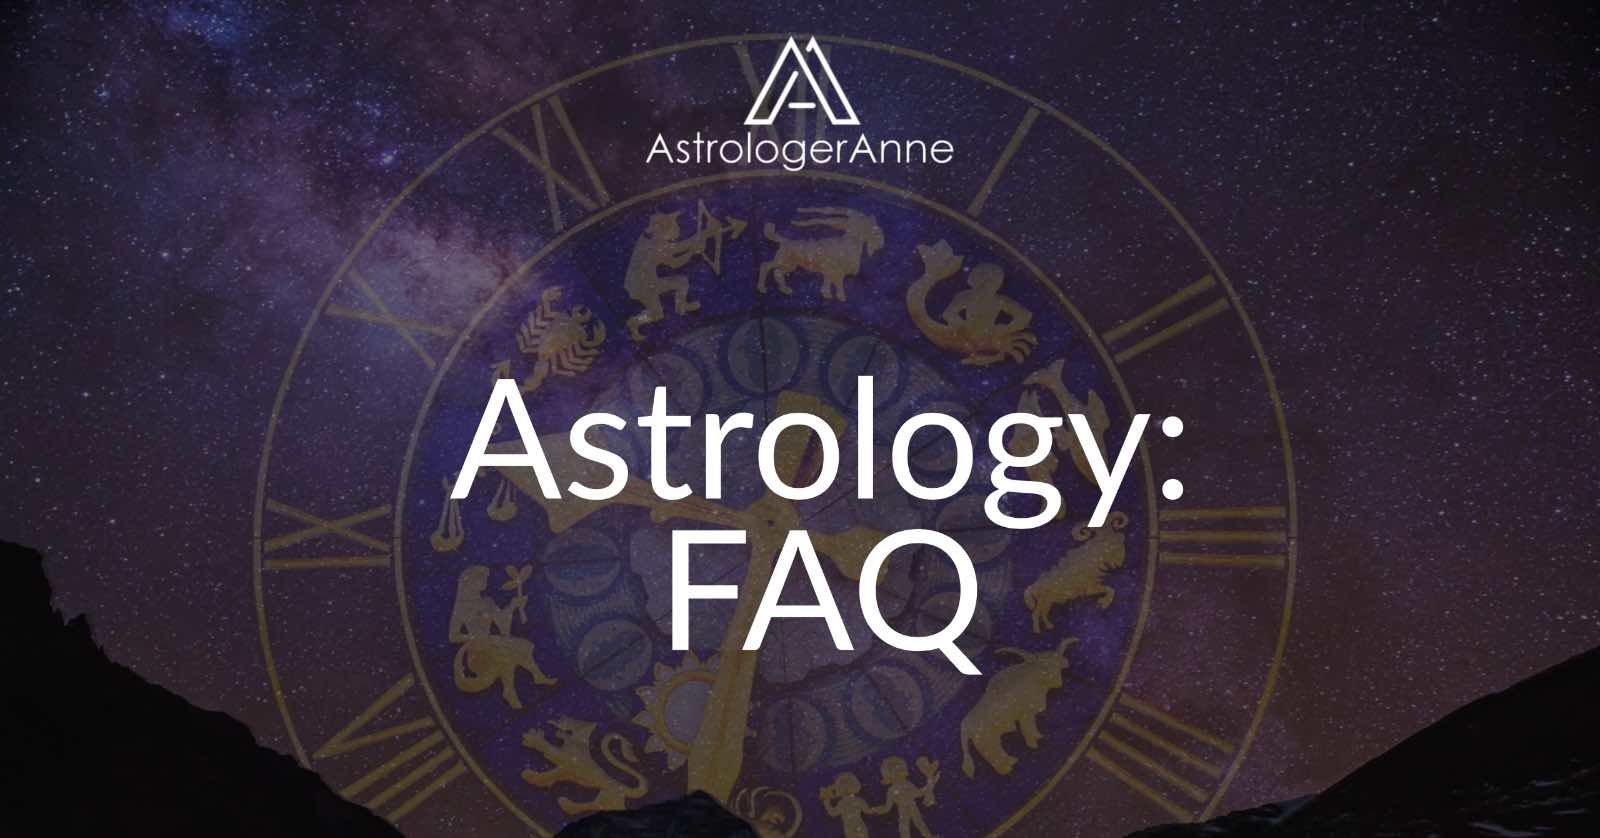 Astrology FAQ - How can I find out my birth time